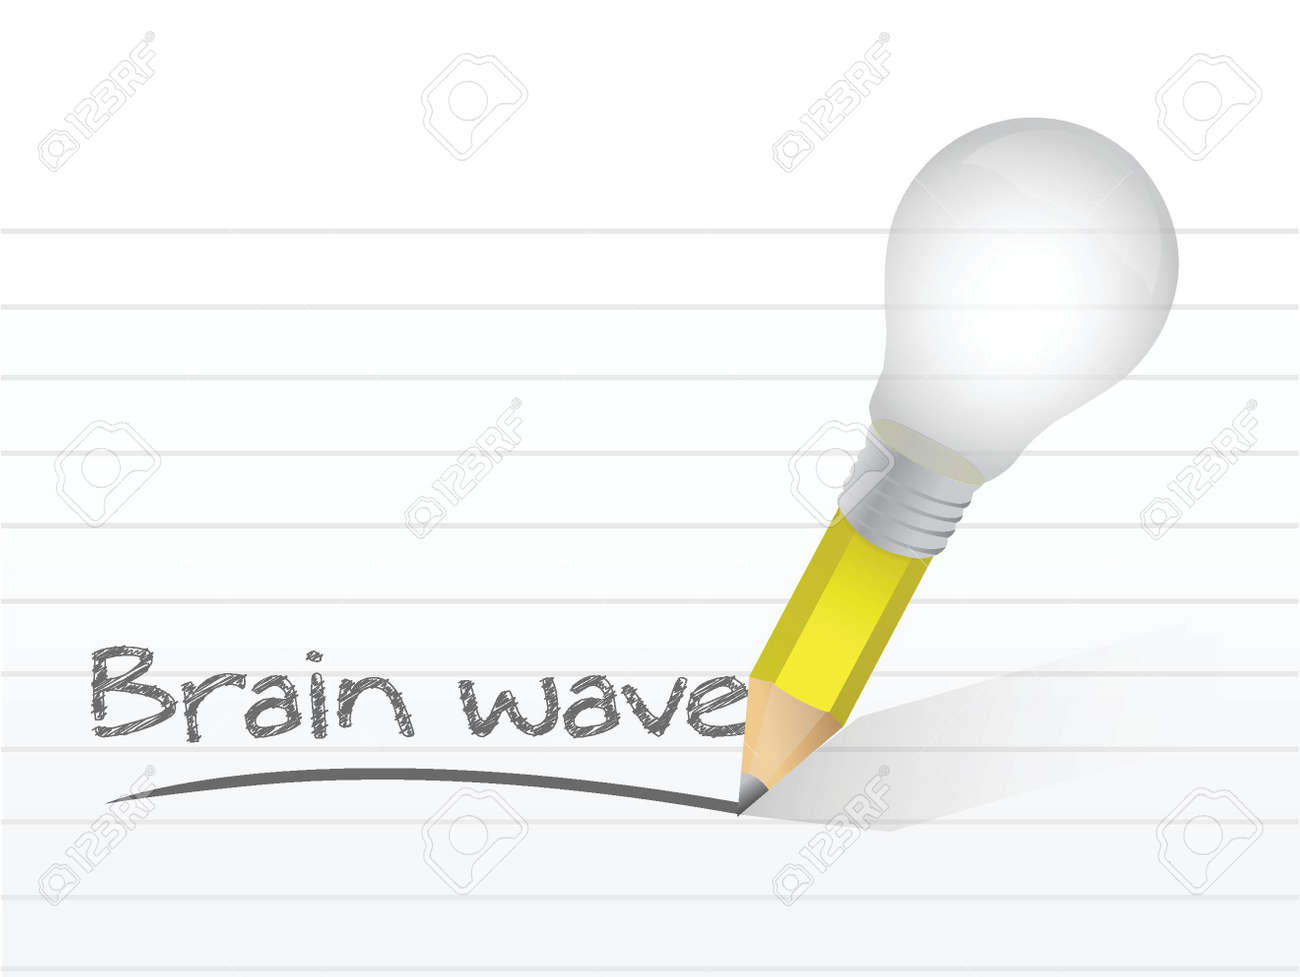 brain wave written with a light bulb idea pencil illustration design over notepad paper Stock Vector - 20760549